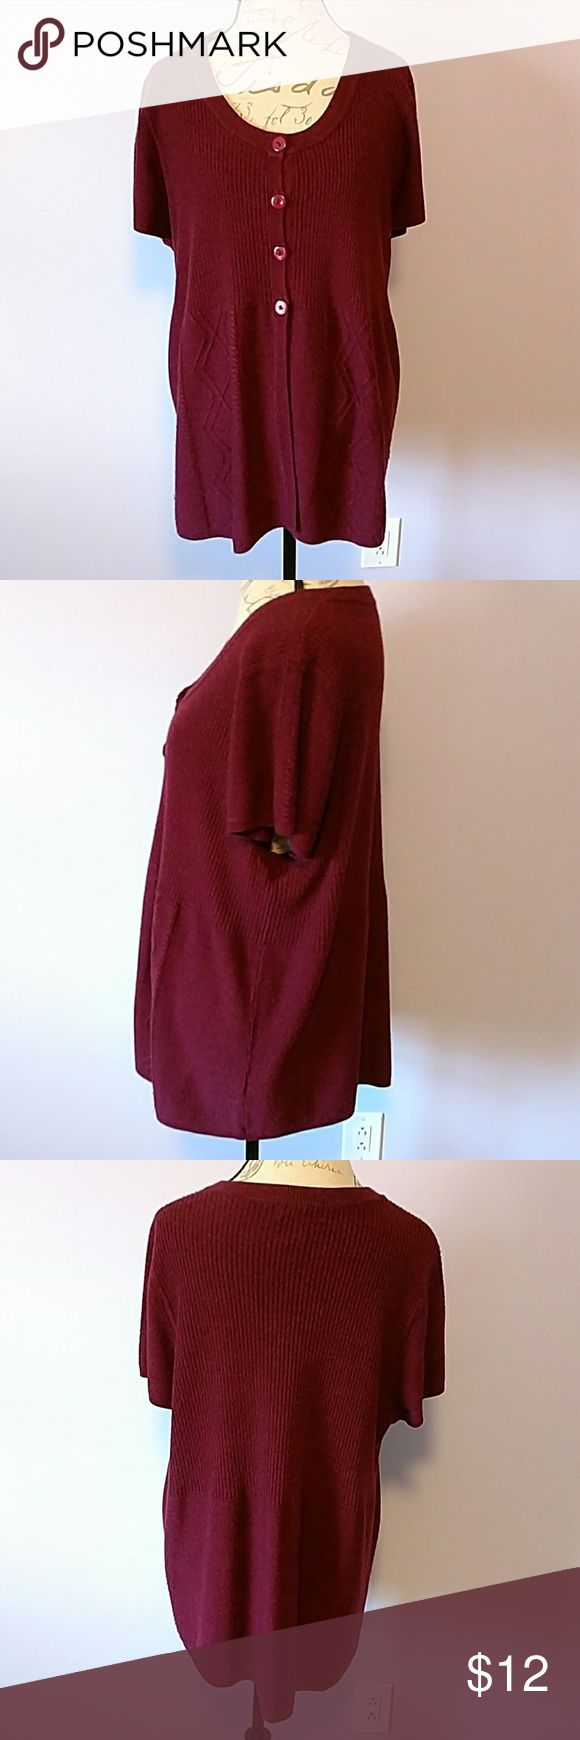 Dress Barn plus size sweater Dress Barn plus size 22/24, button top and open front sweater with short sleeves in maroon. Dress Barn Sweaters